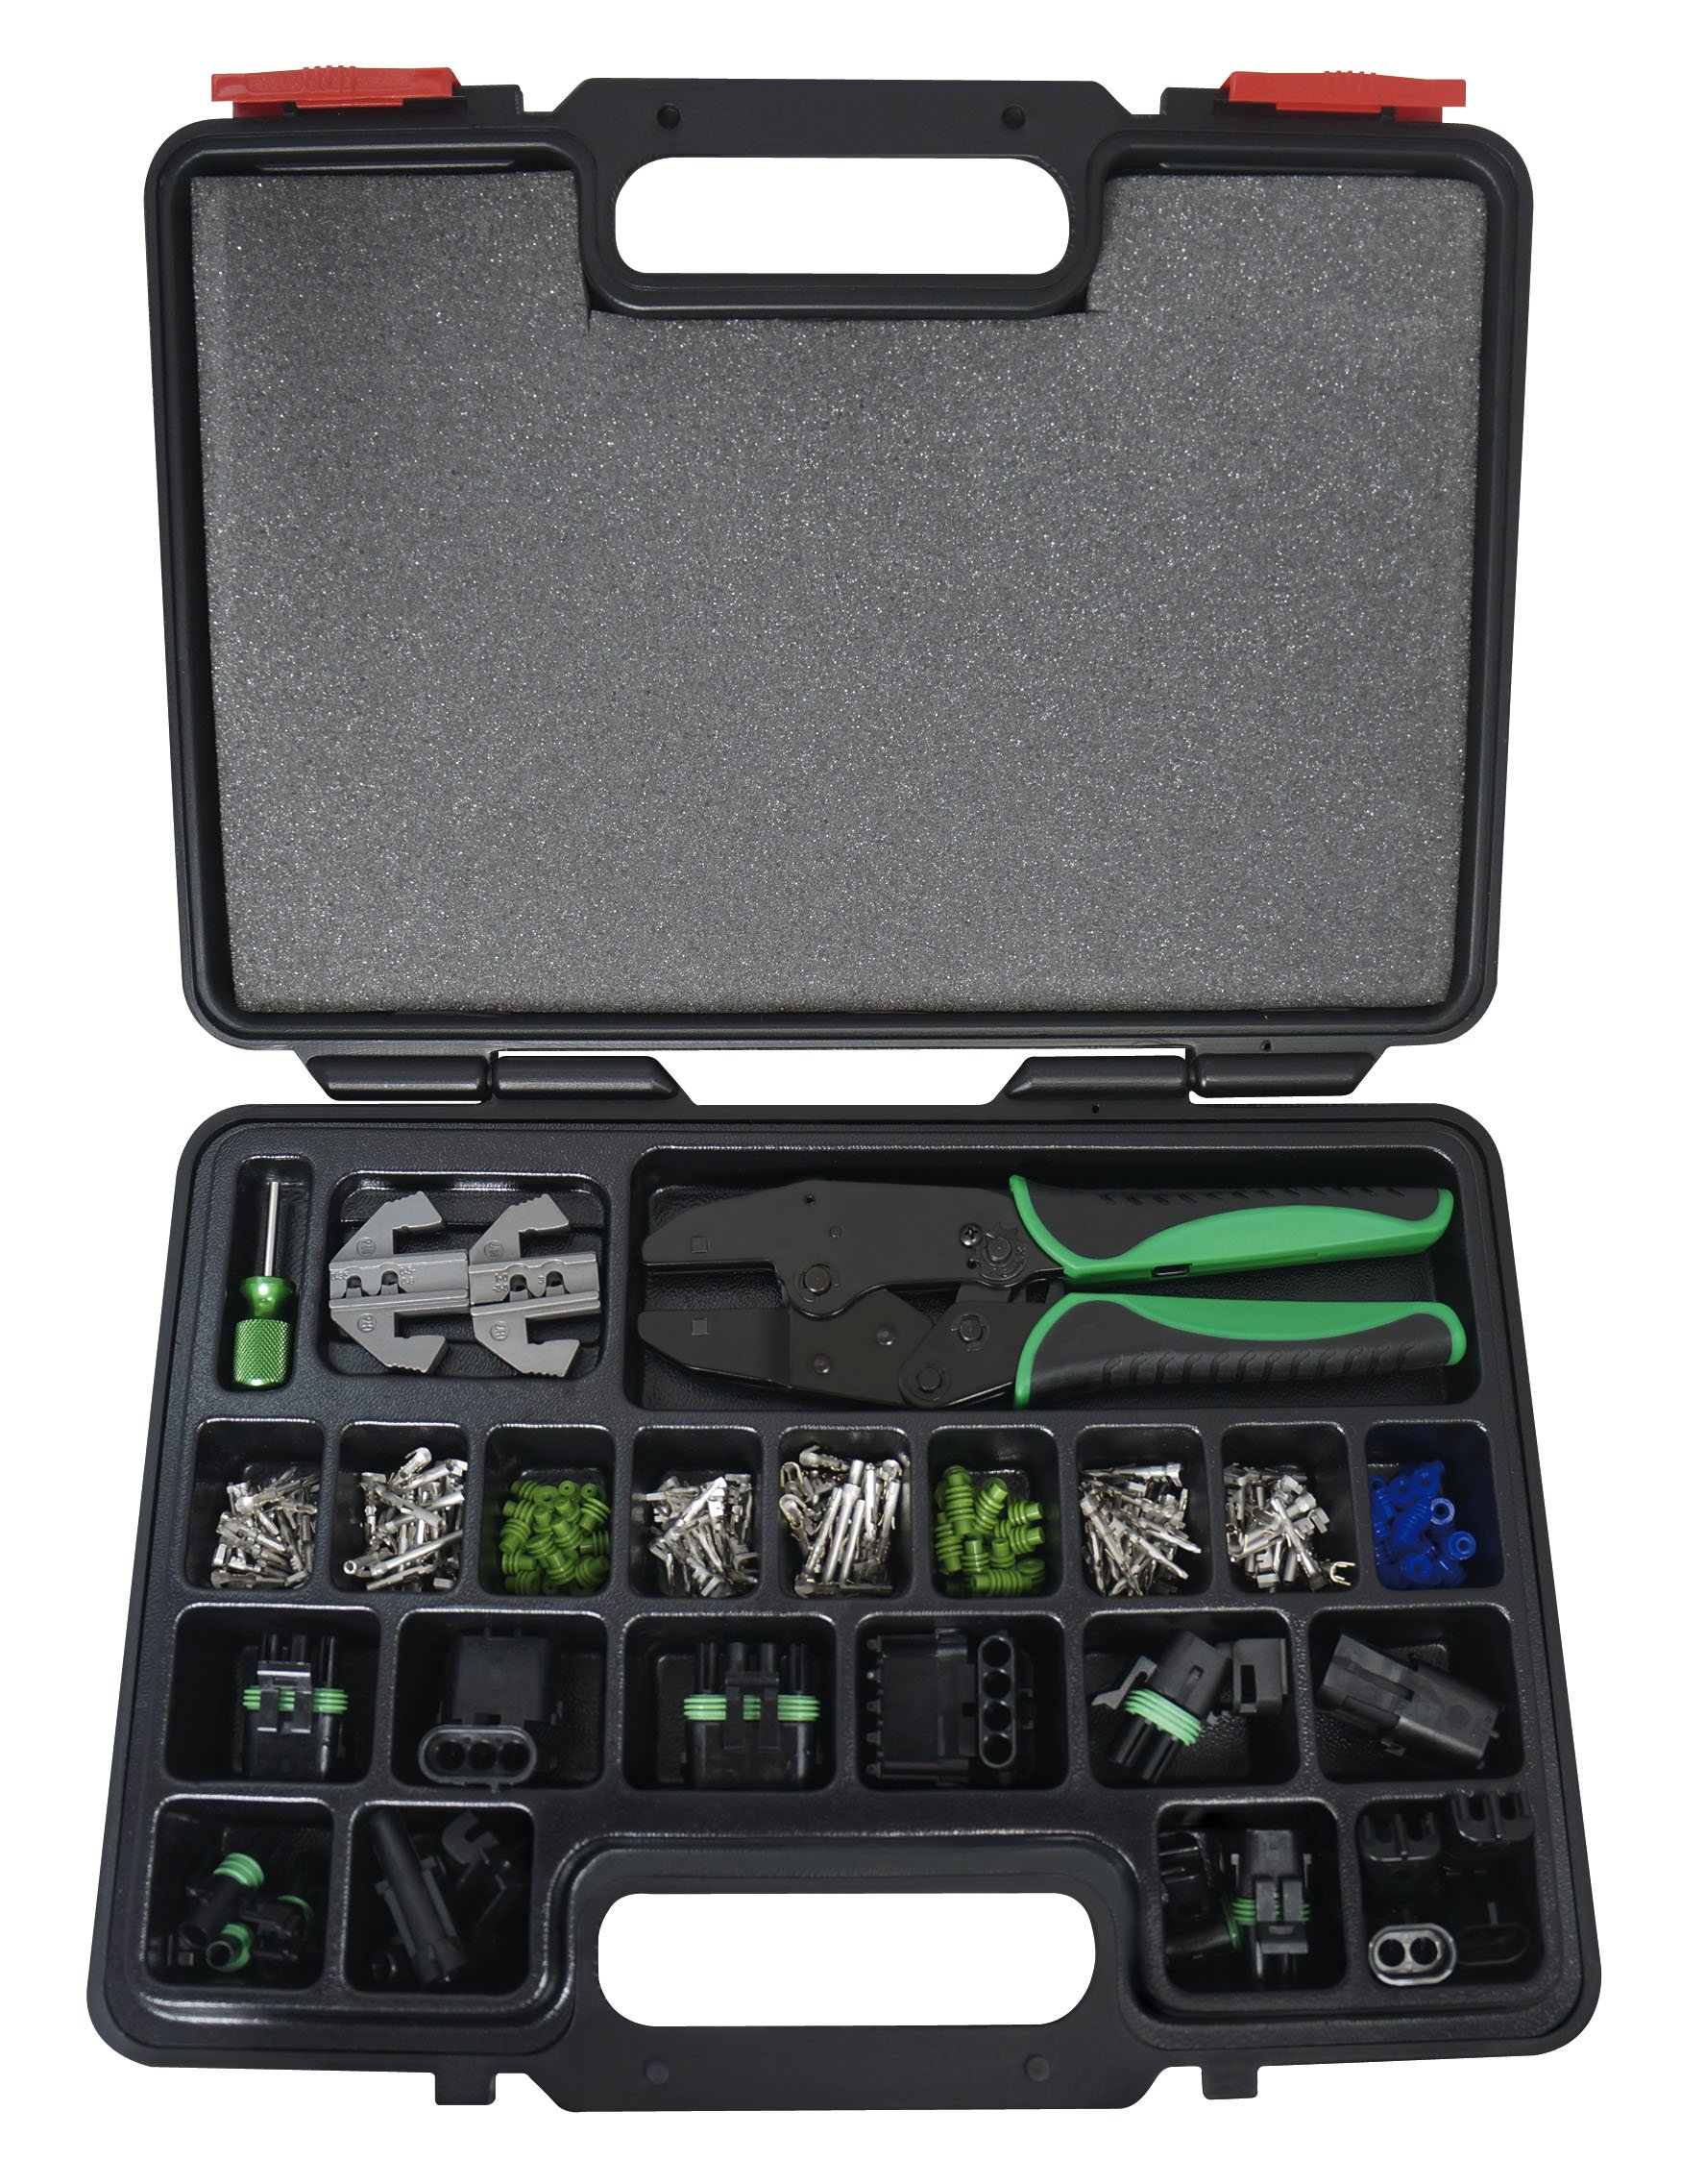 Astro Pnematic - 220Pc Weather Pack Interchangeable Ratcheting Crimping Tool & Accessory Set (model: 9478) by Astro Pneumatic Tool